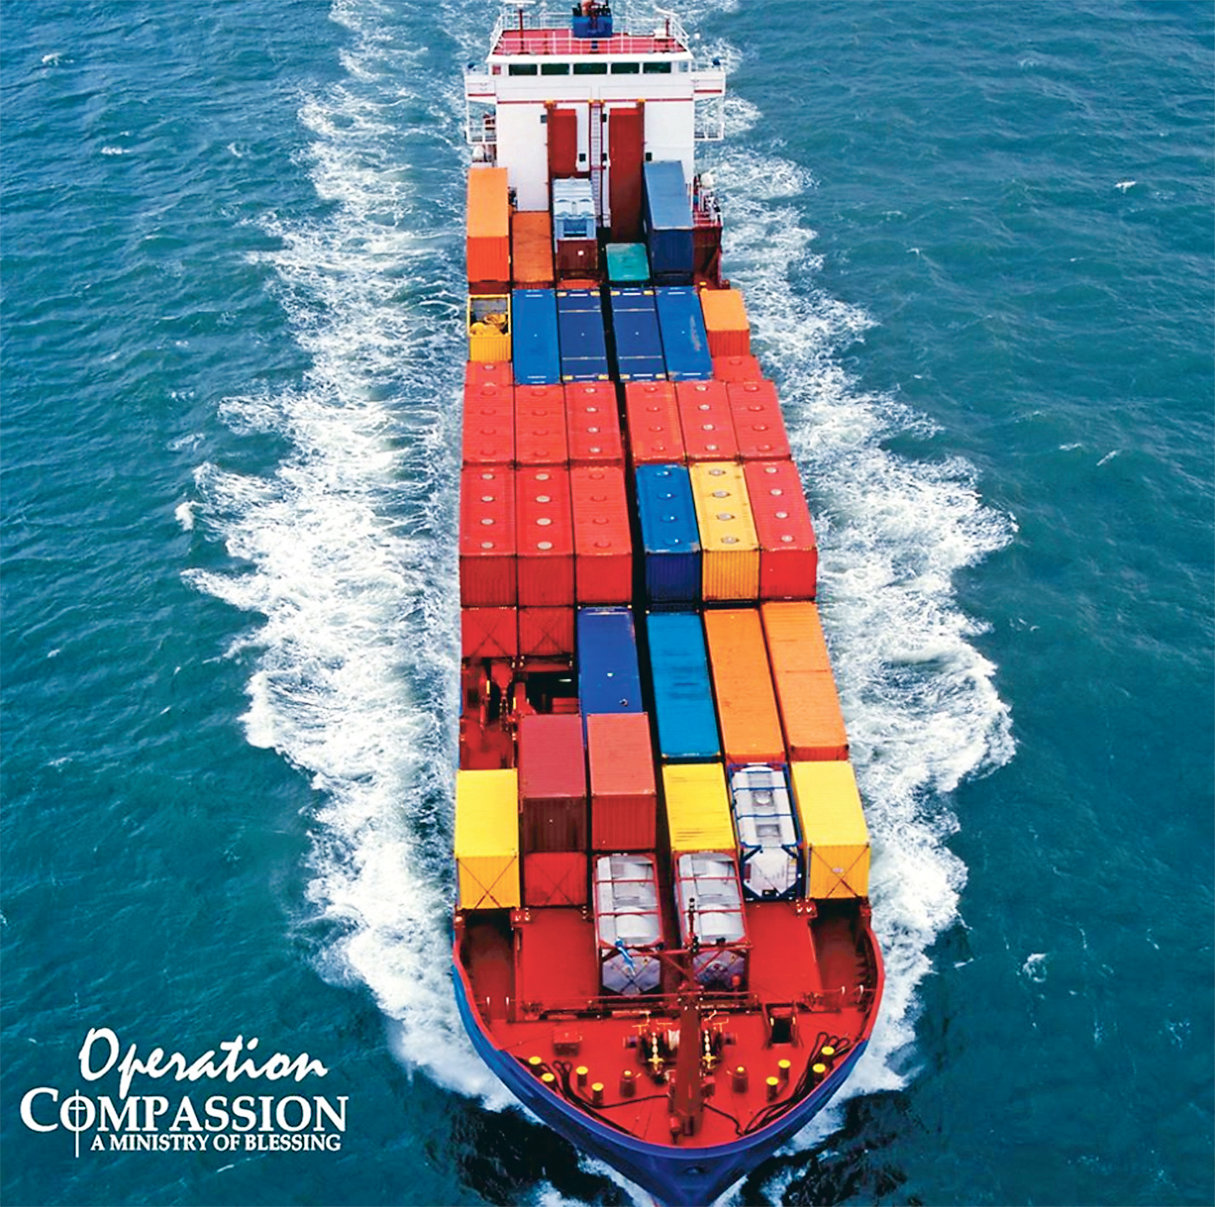 OPERATION COMPASSION, a Cleveland-based humanitarian and disaster-relief organization, is shipping five barges of relief-aid products to the Bahamas, where Category 5 Hurricane Dorian ravaged several islands last week. The barges began shipping Saturday.